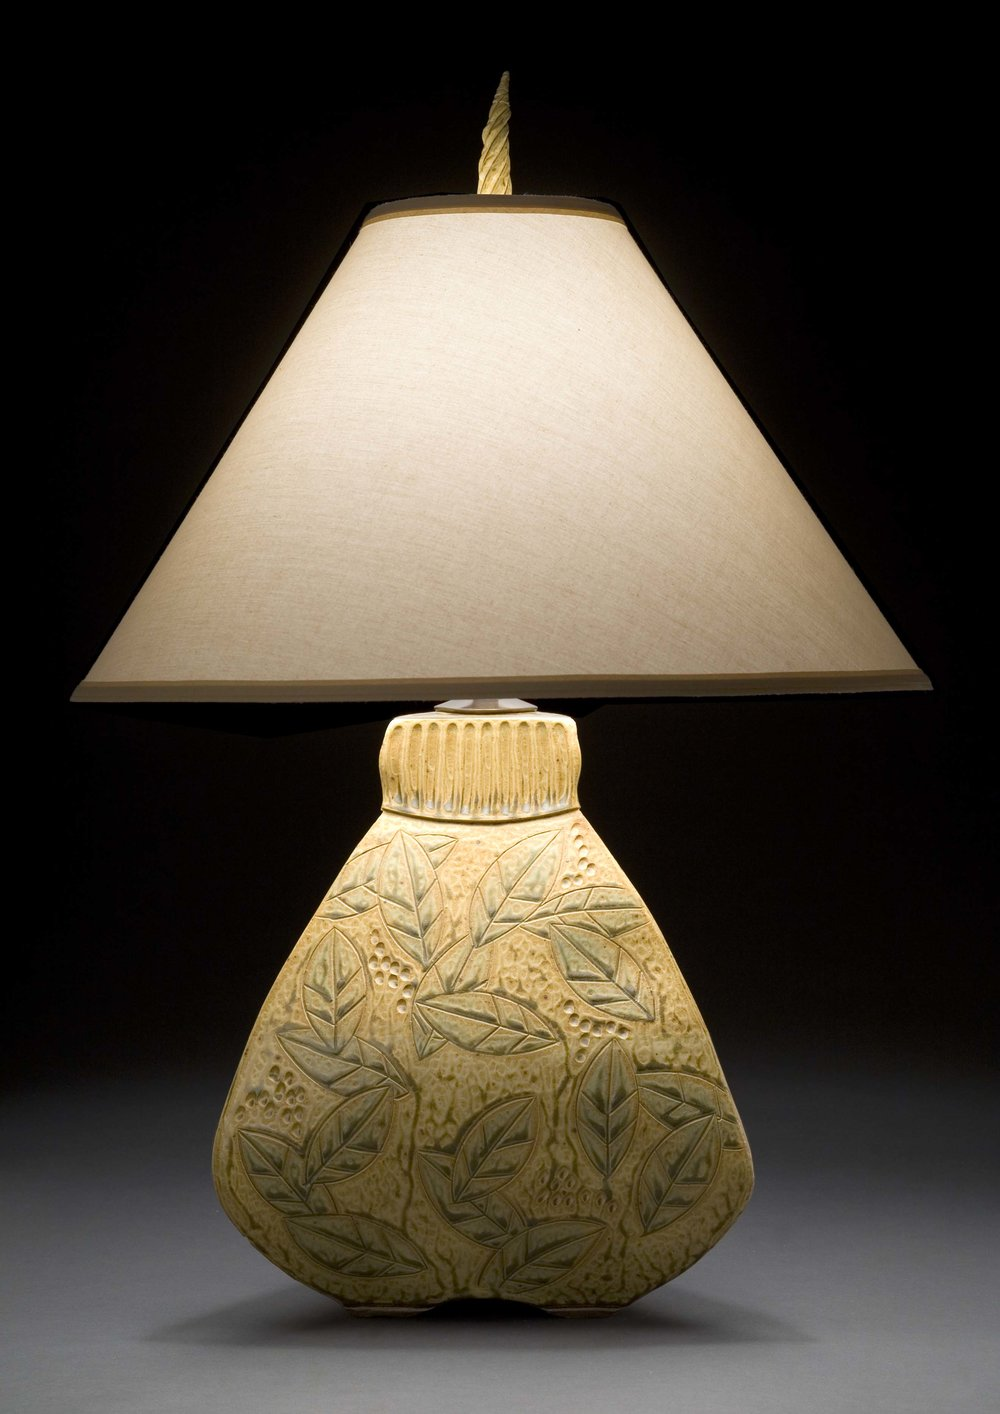 Jim & Shirl Parmentier - Asheville, NC.  Hand-built, carved, & glazed ceramic lamps & functional ware.